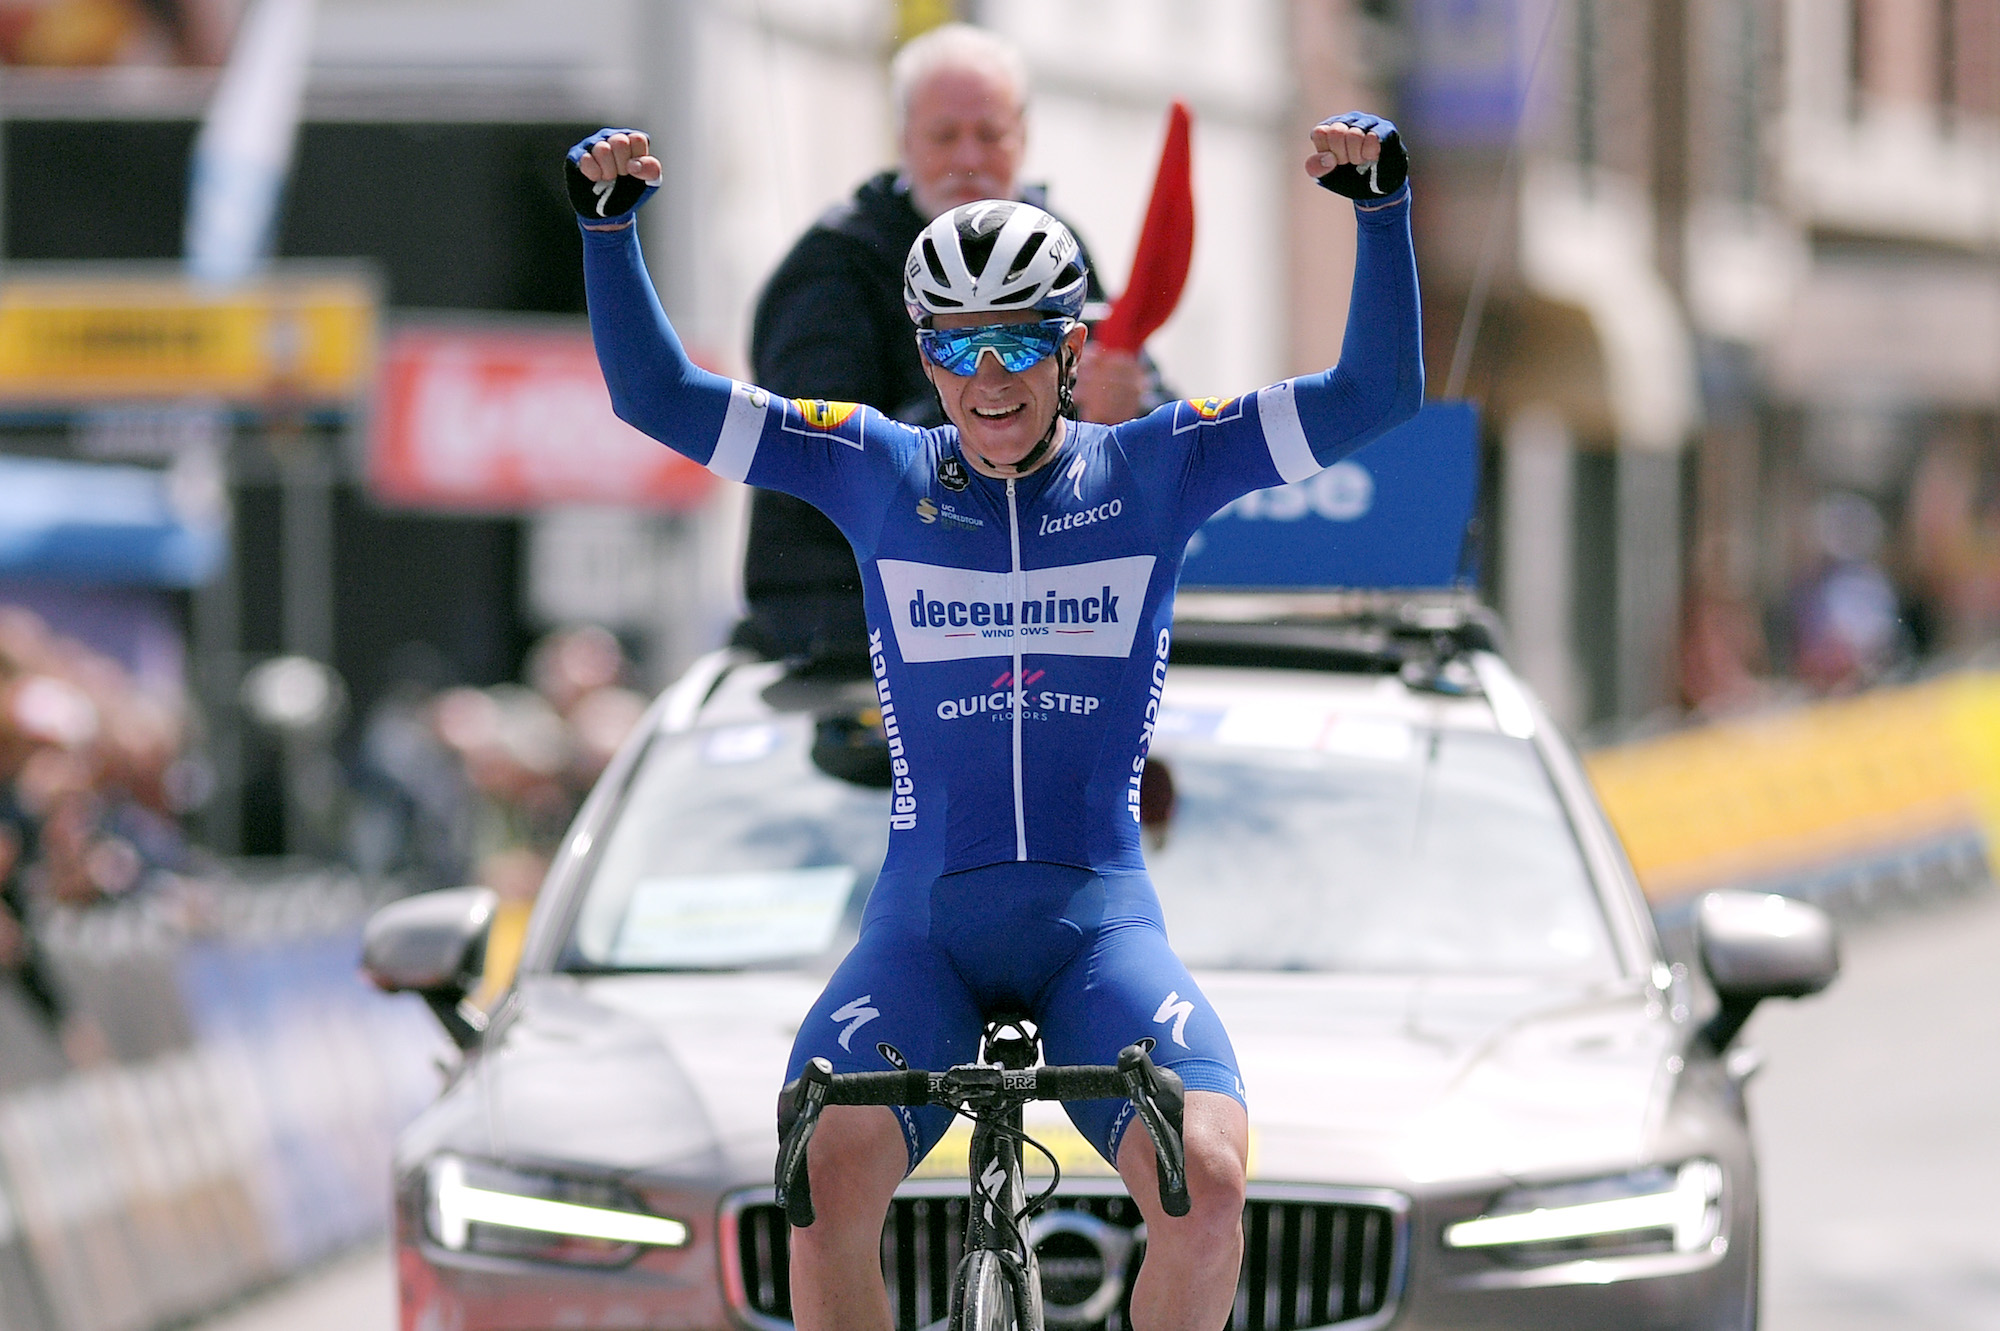 remco evenepoel lives up to hype with first pro win at belgium tour